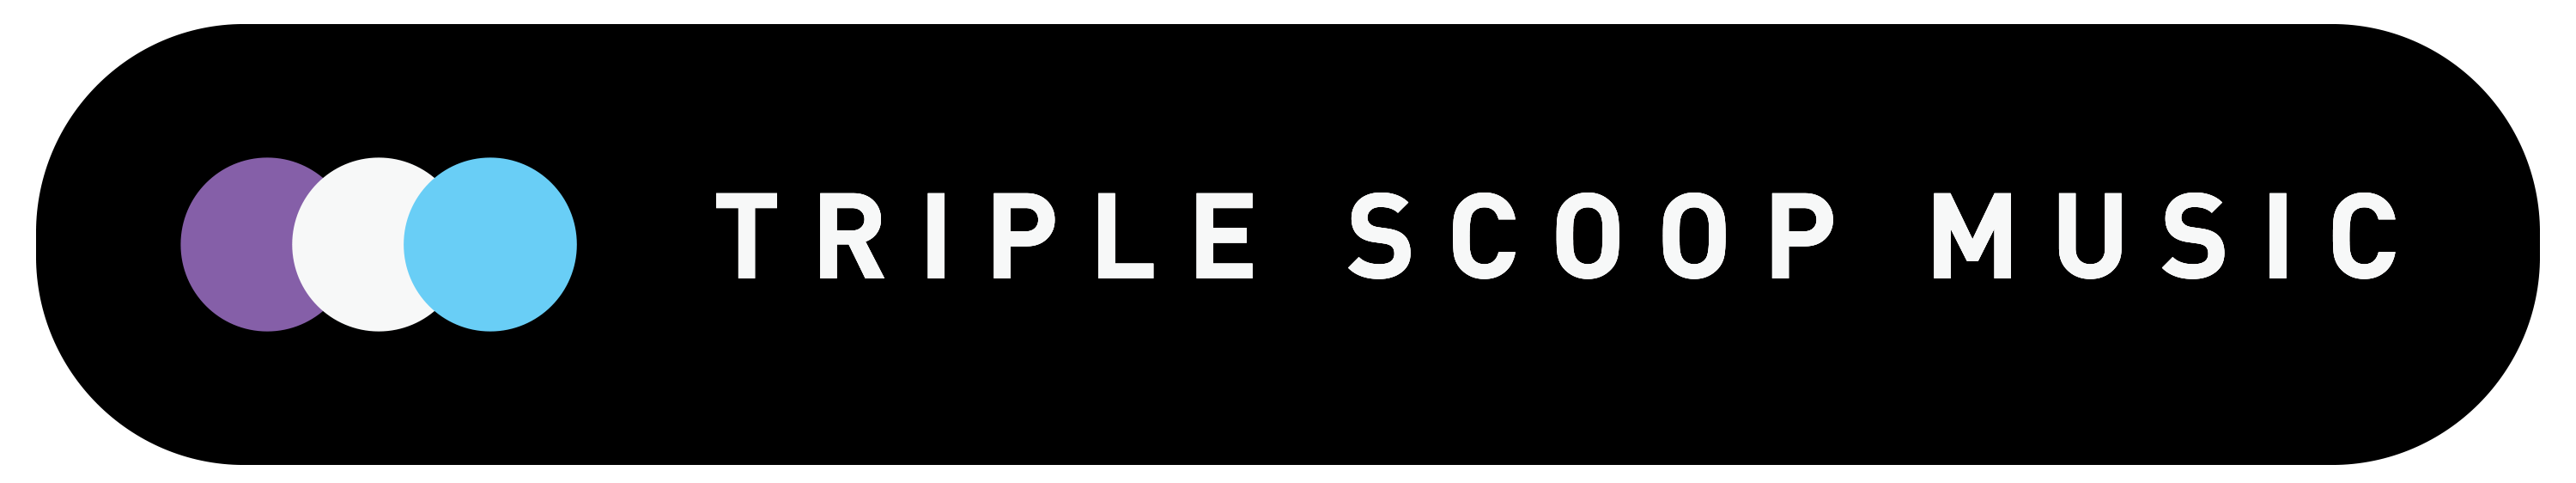 How to submit music to TSM – Triple Scoop Music